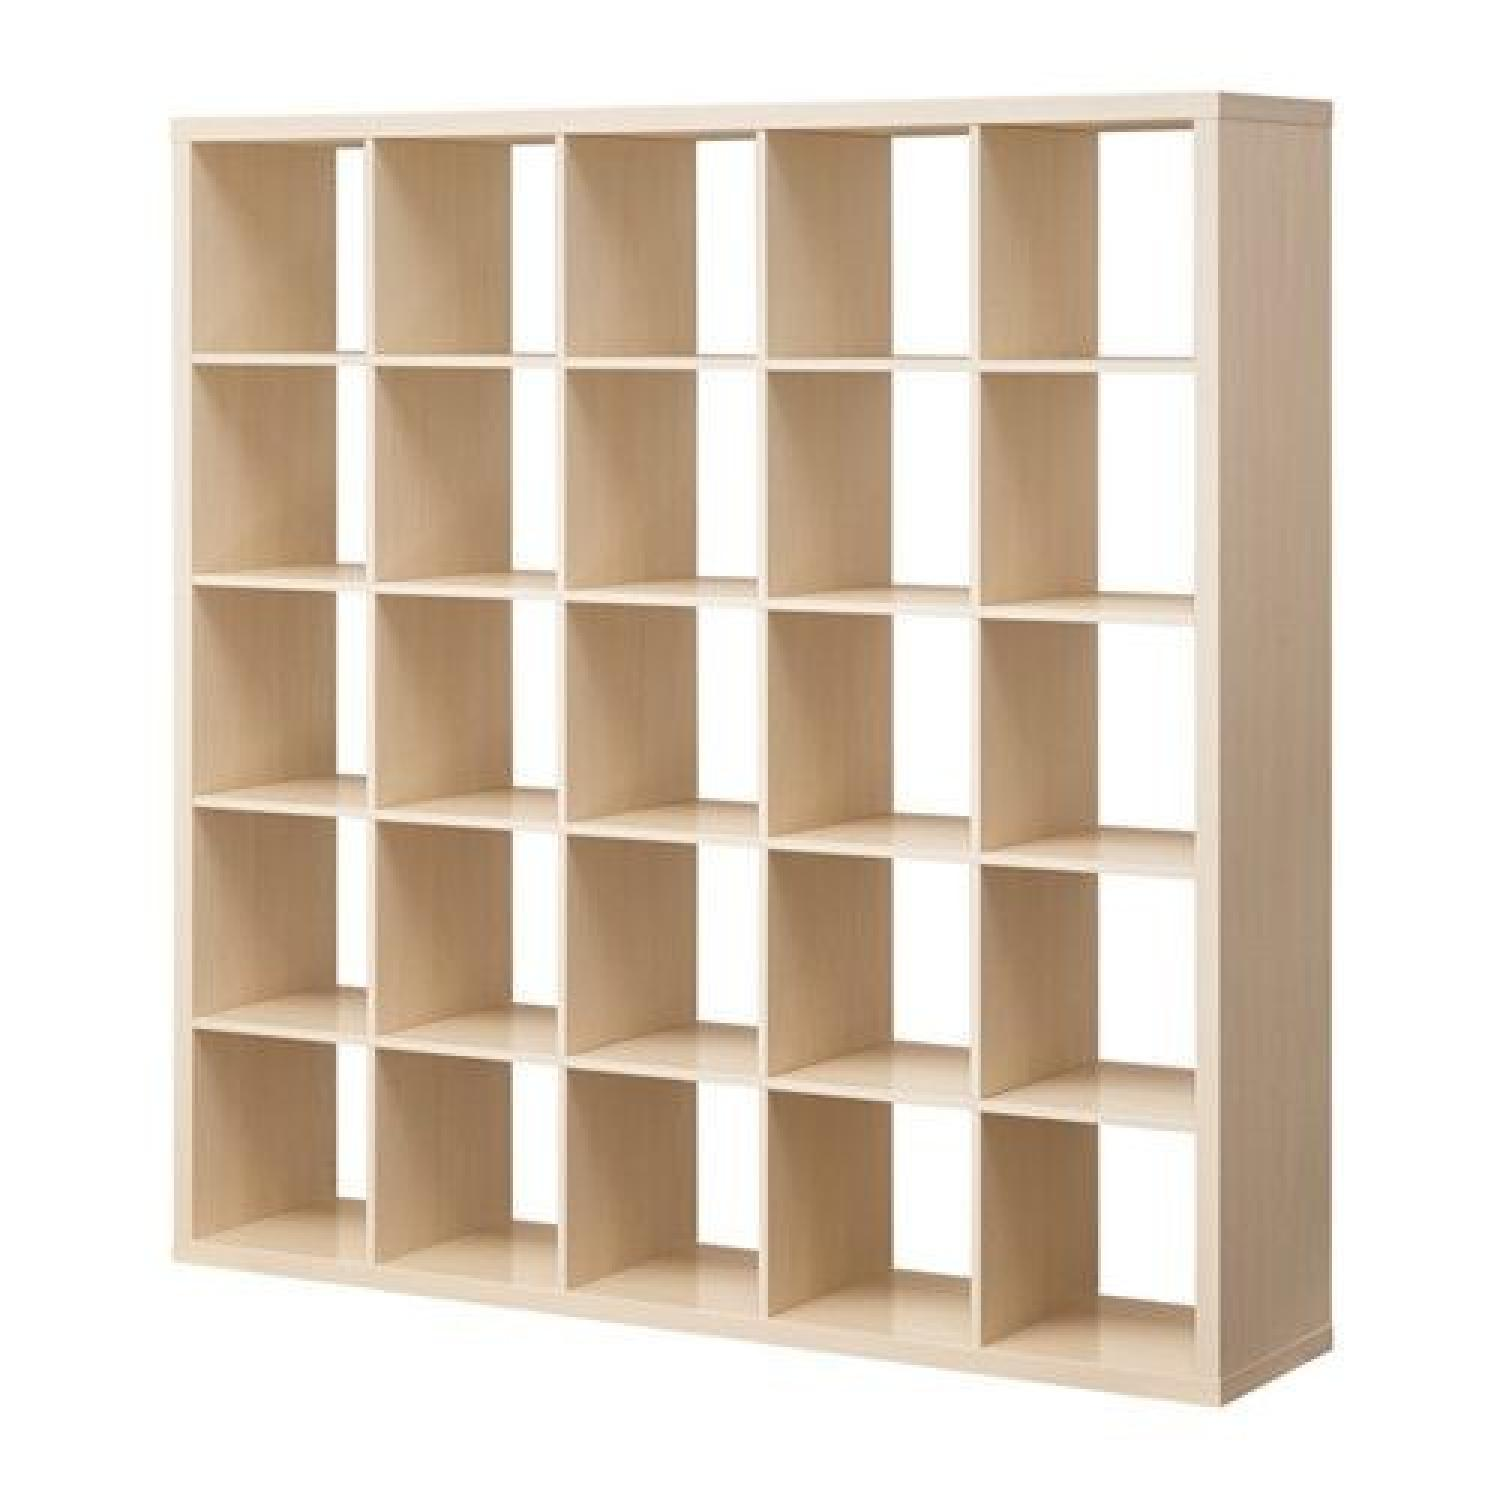 Ikea Kallax Shelving Unit in Birch